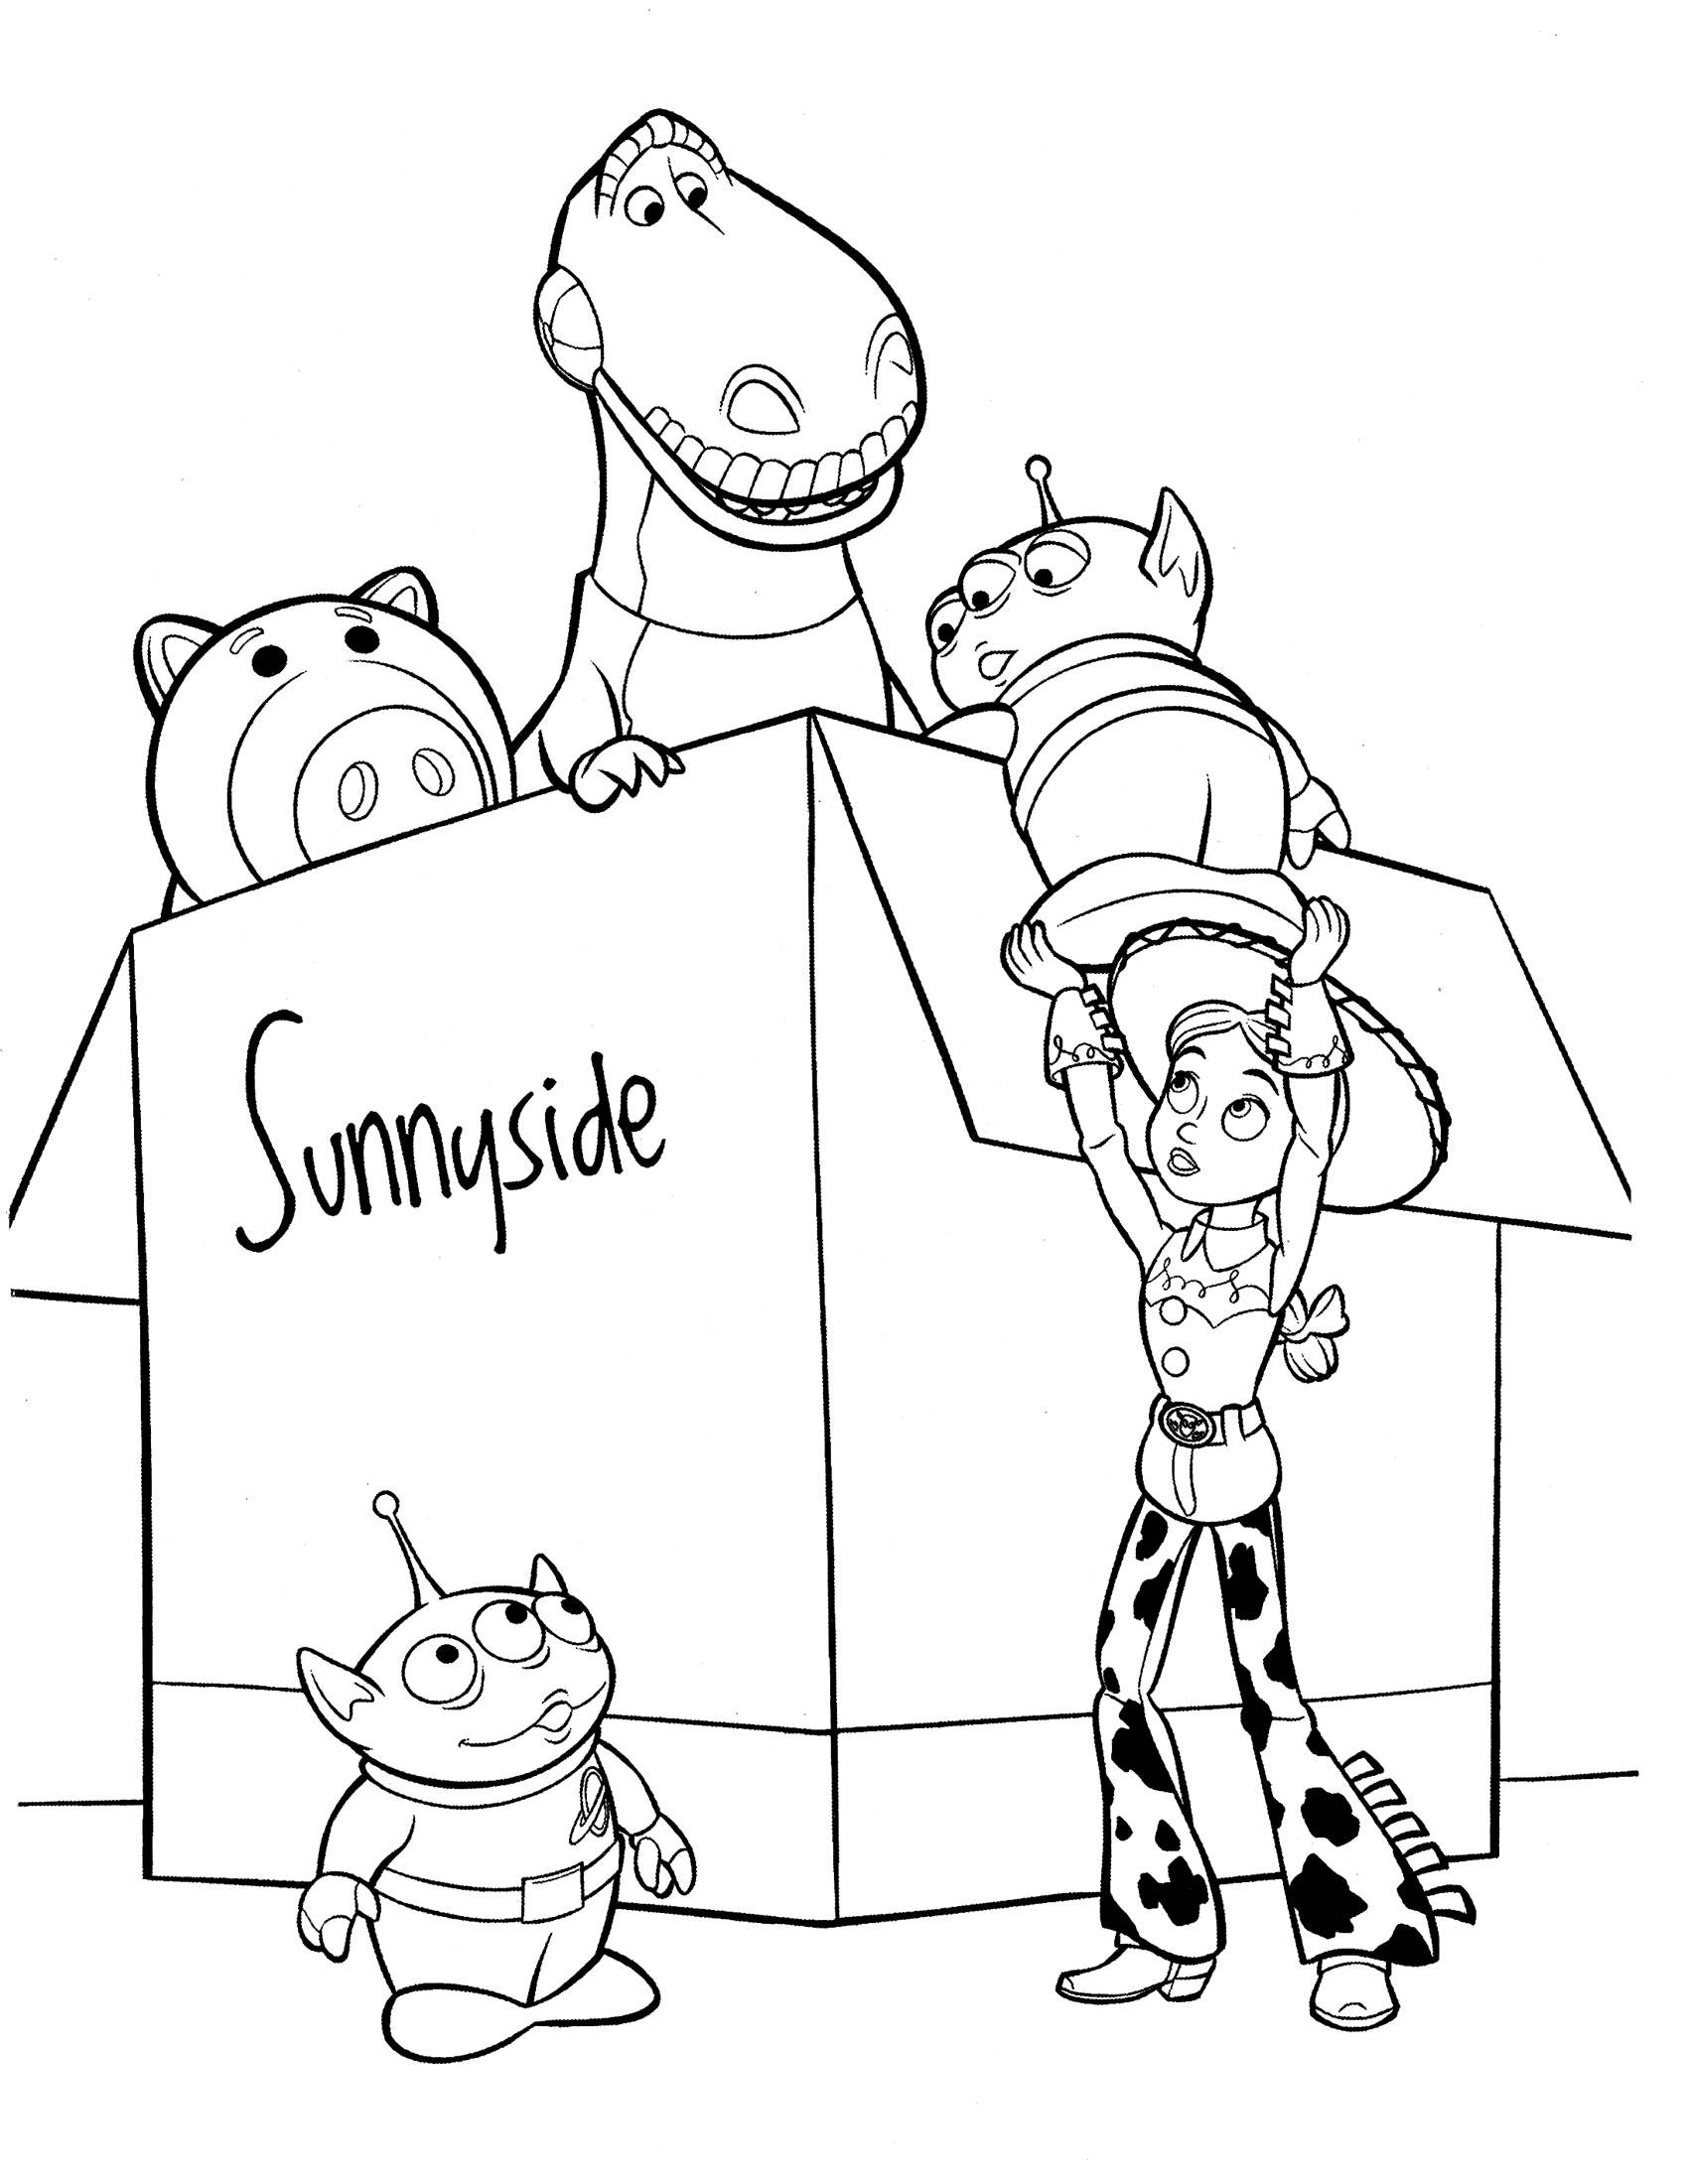 buzz toy story 4 coloring pages 37 toy story 4 colouring sheet colouringsheet coloring buzz toy pages story 4